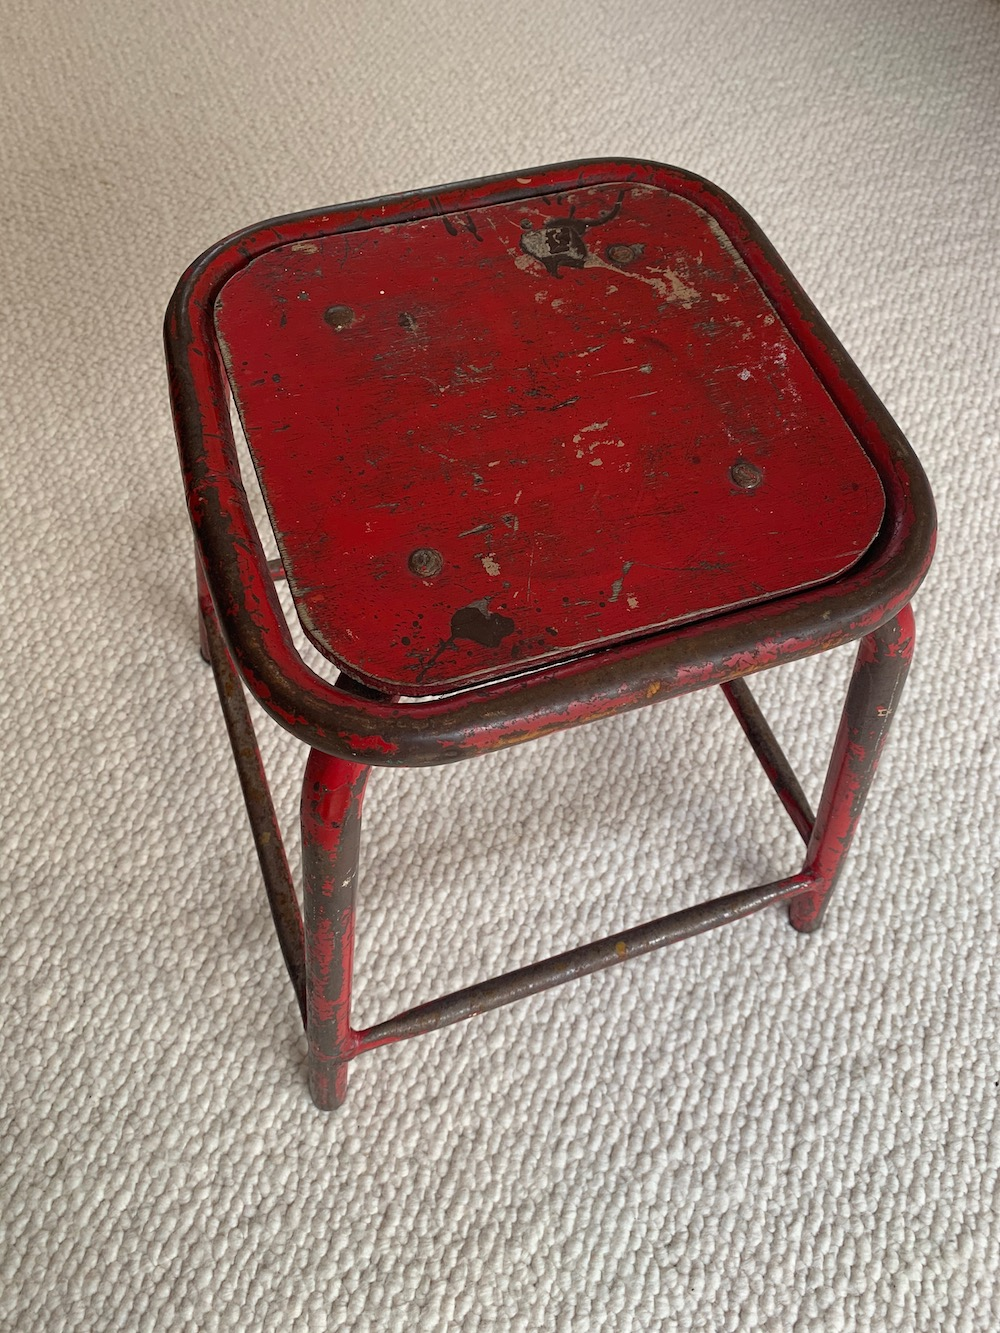 tabouret, stool, industrial stool, tabouret industrial, nice chair, vintage stool, tabouret vintage, tabouret rouge, red stool, charming stool, kitchen stool